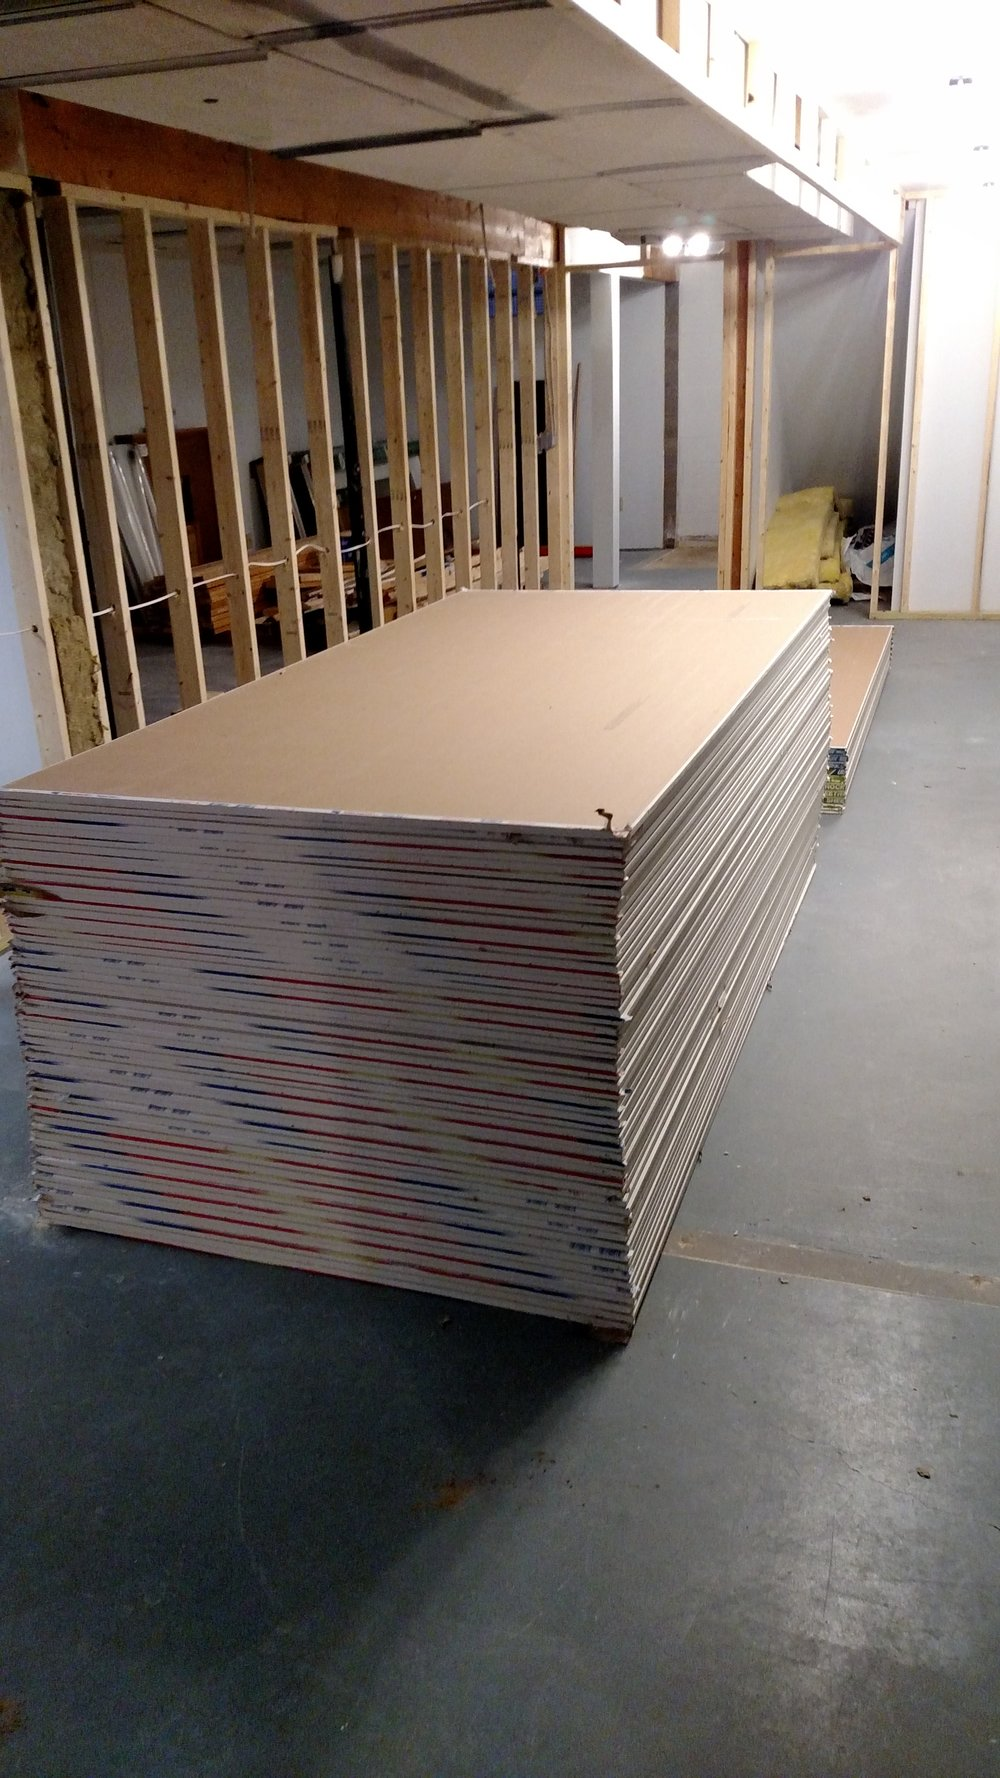 Drywall delivered for studios